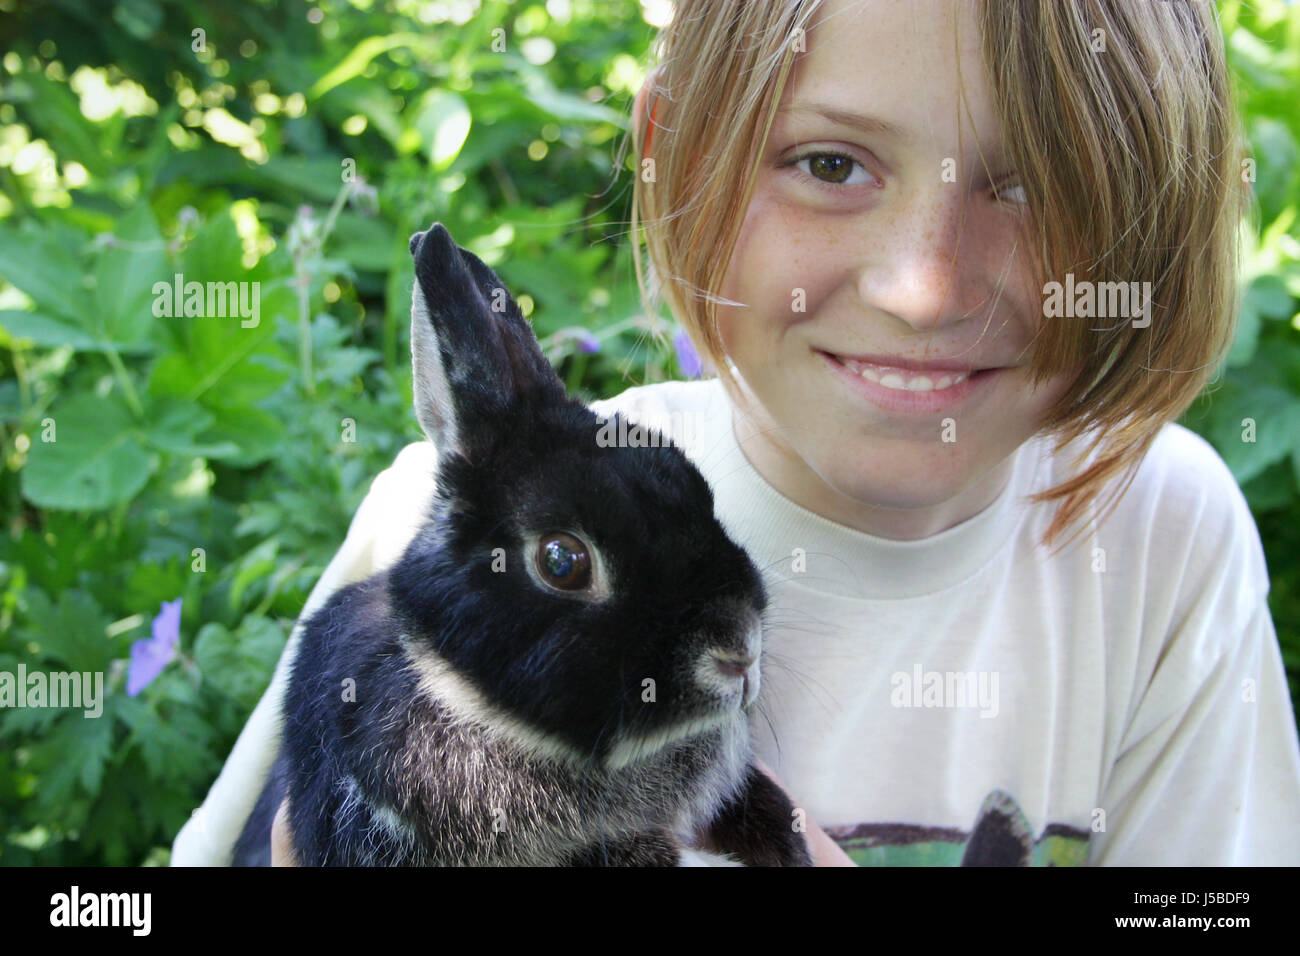 laugh laughs laughing twit giggle smile smiling laughter laughingly smilingly Stock Photo